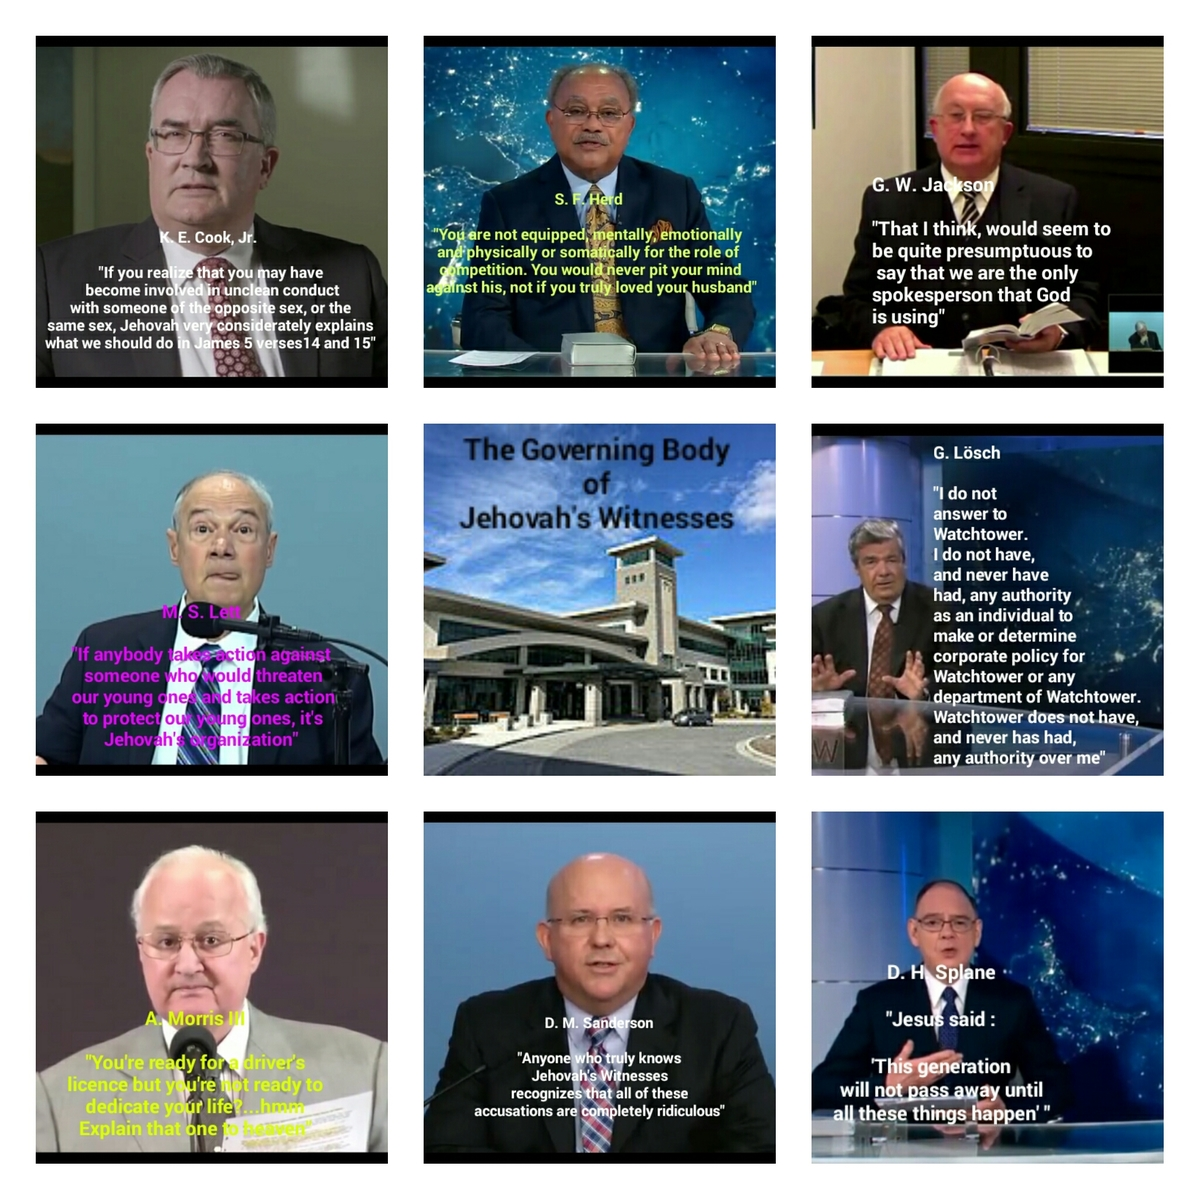 The Governing Body of Jehovah's Witnesses ~ in their own words